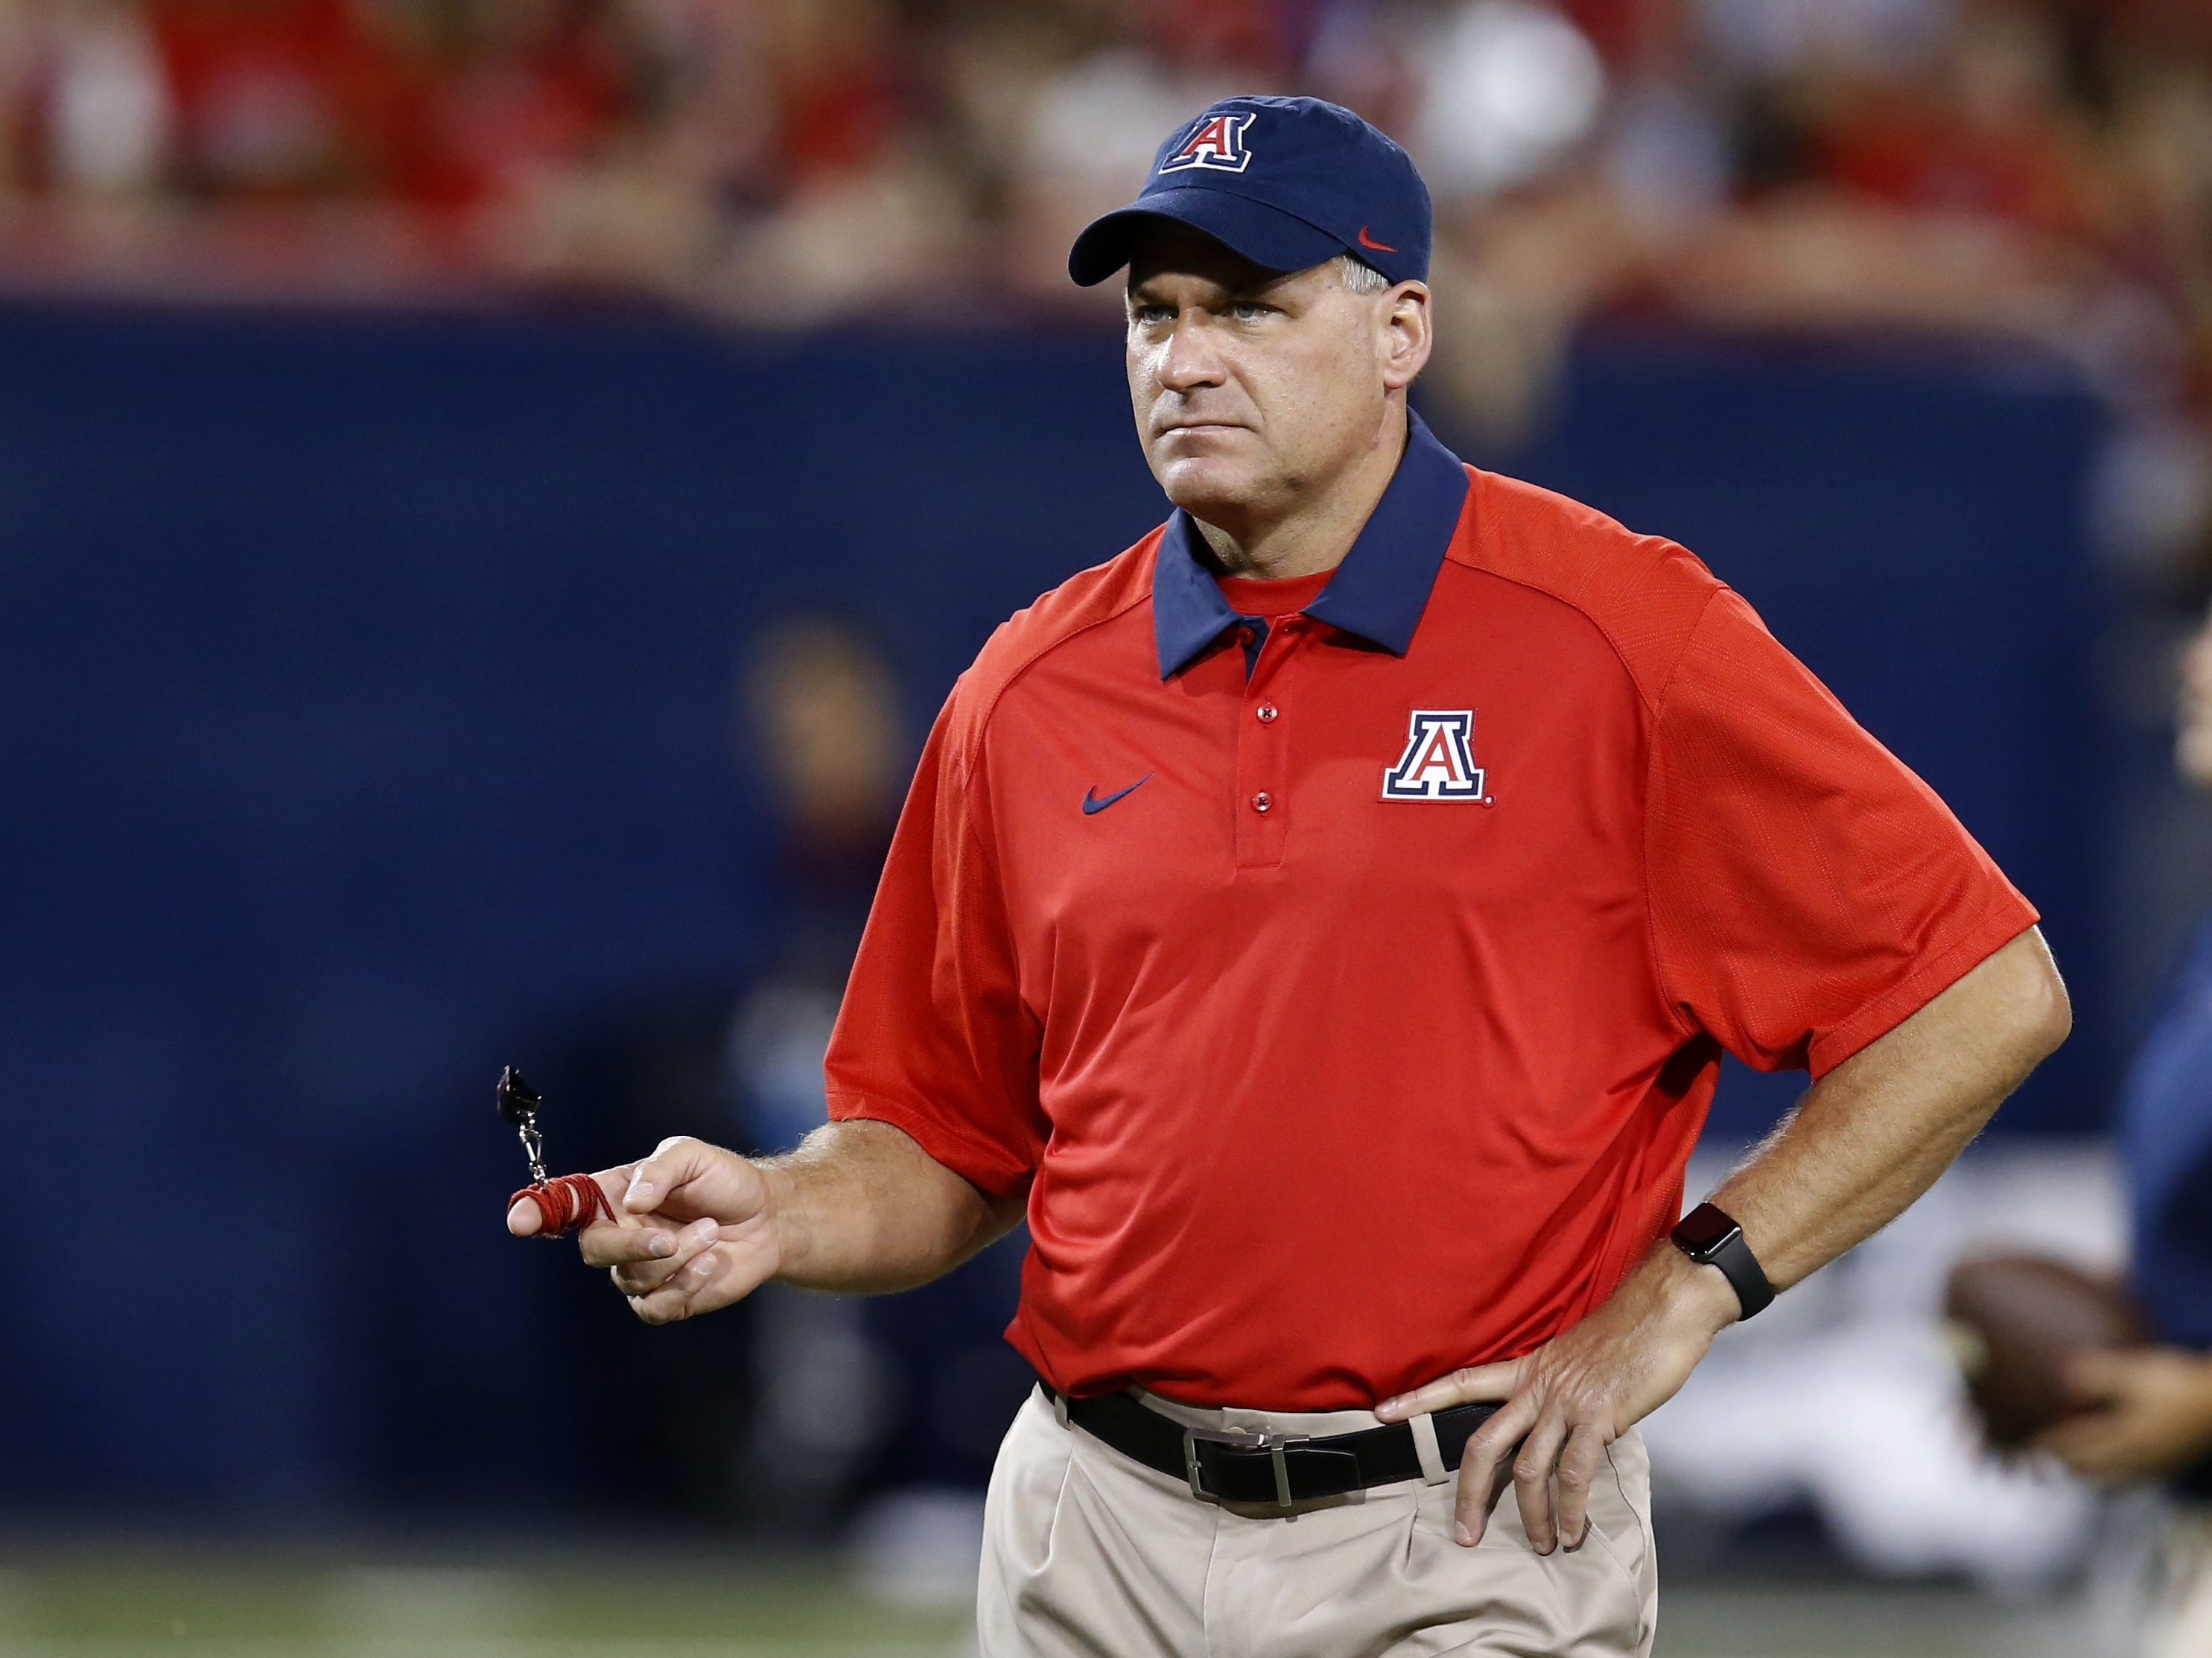 FILE - This Sept. 19, 2015 file photo shows Arizona head coach Rich Rodriguez during the second half of an NCAA college football game against Northern Arizona, in Tucson, Ariz. Spring comes early in college football or at least spring practice does. At Ar